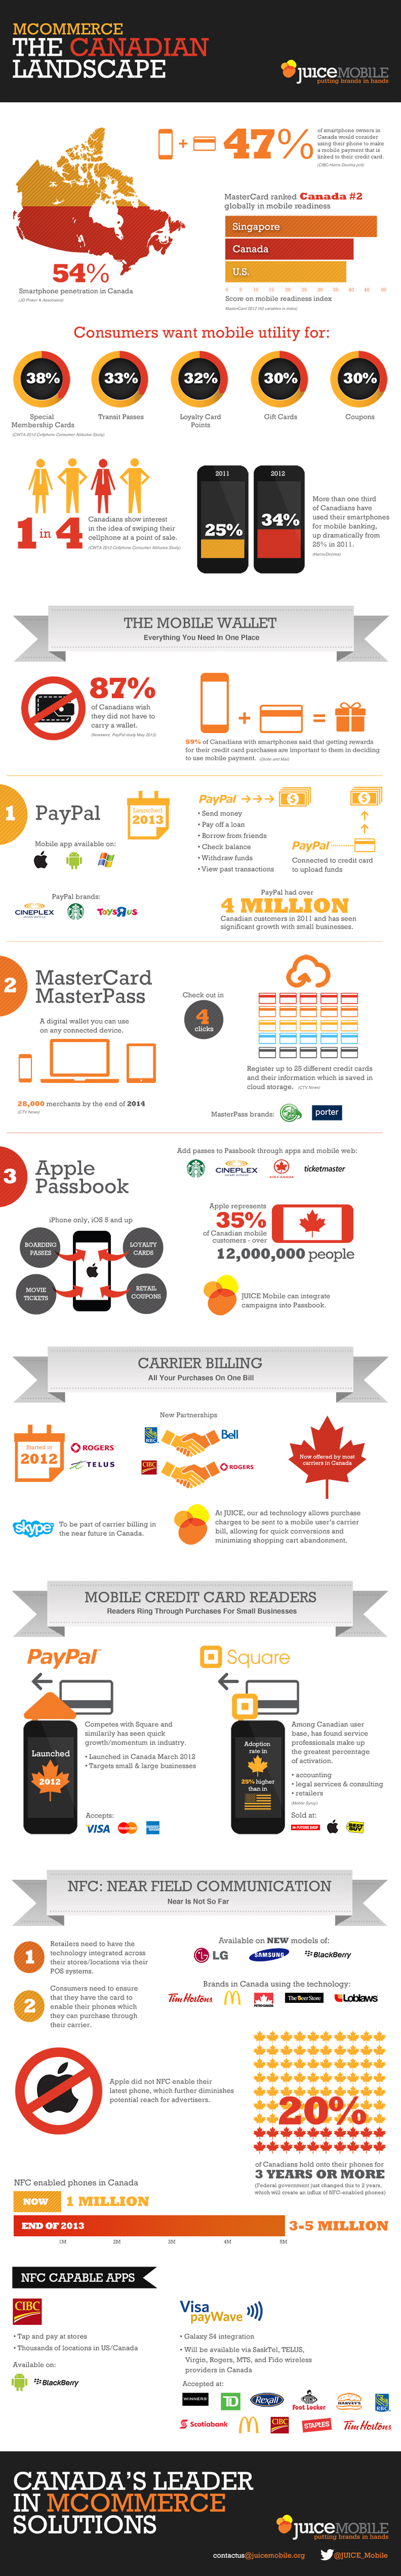 Mcommerce: The Canadian Landscape